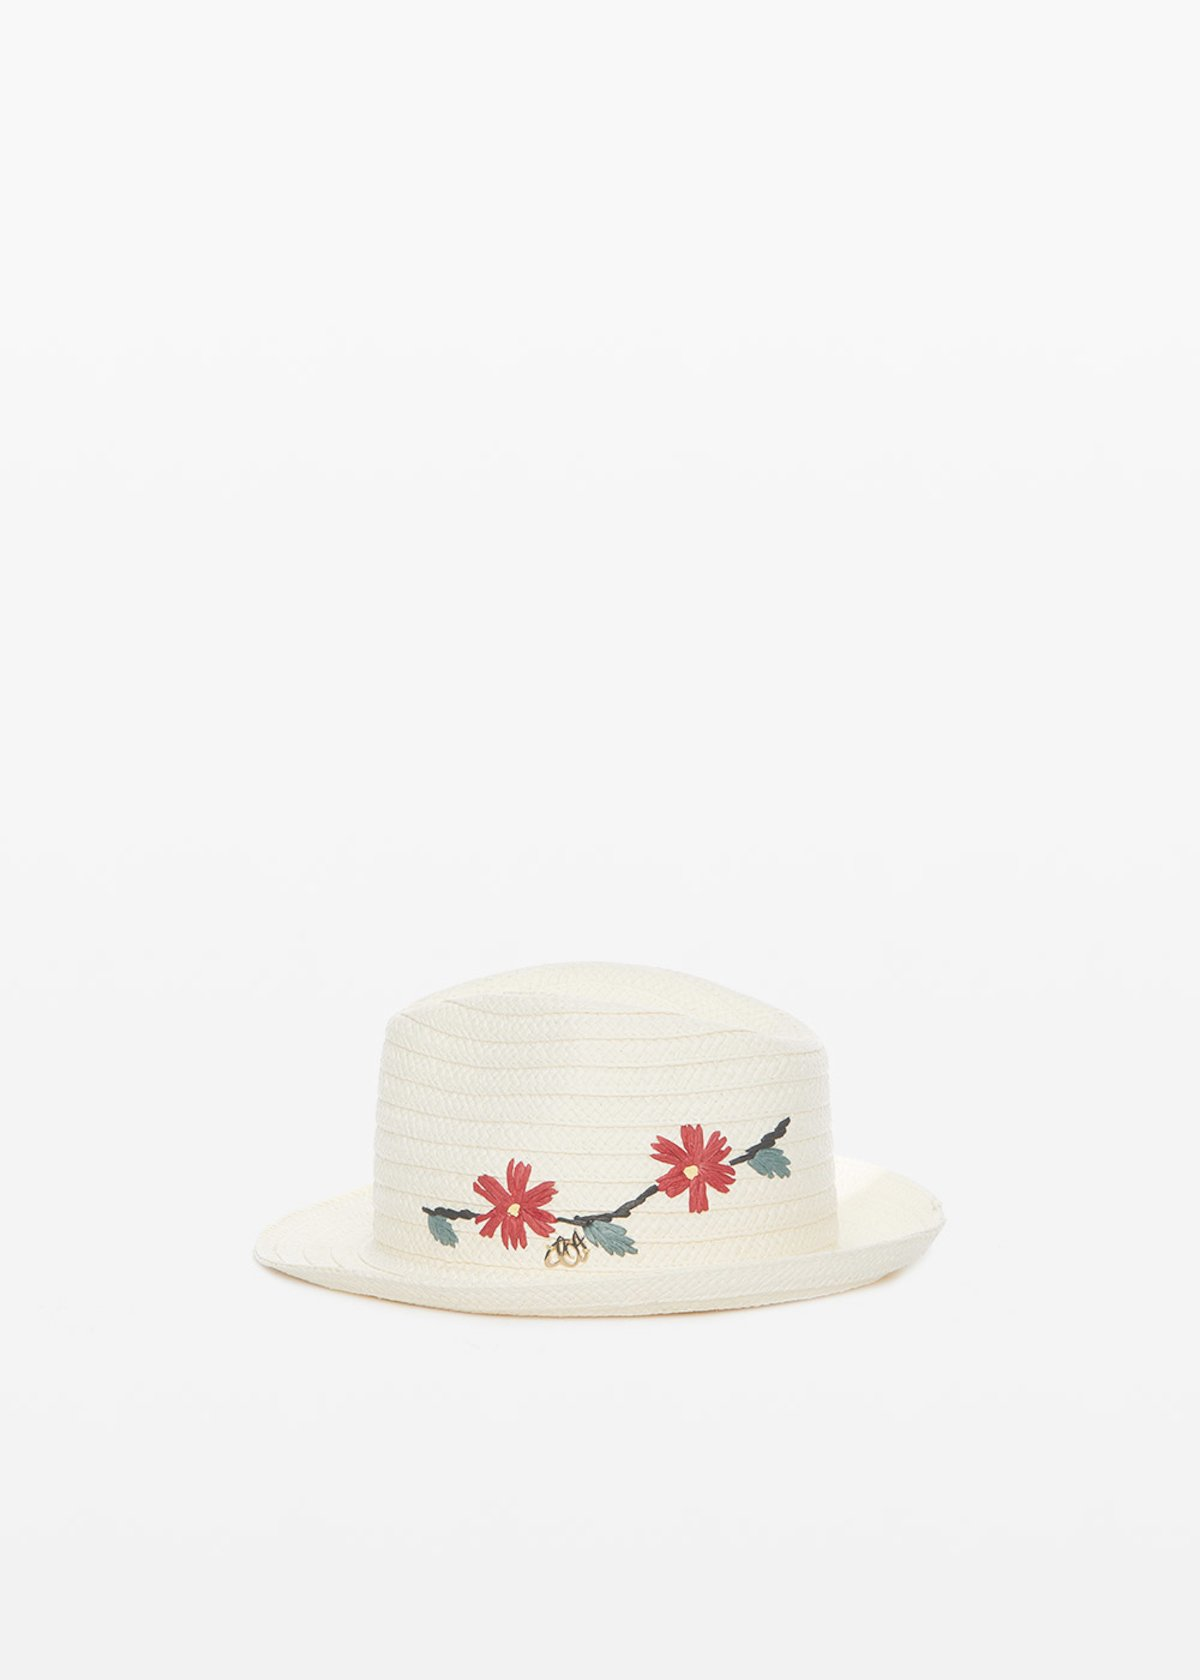 Clay straw hat with flowers embroidery - White Fantasia - Woman